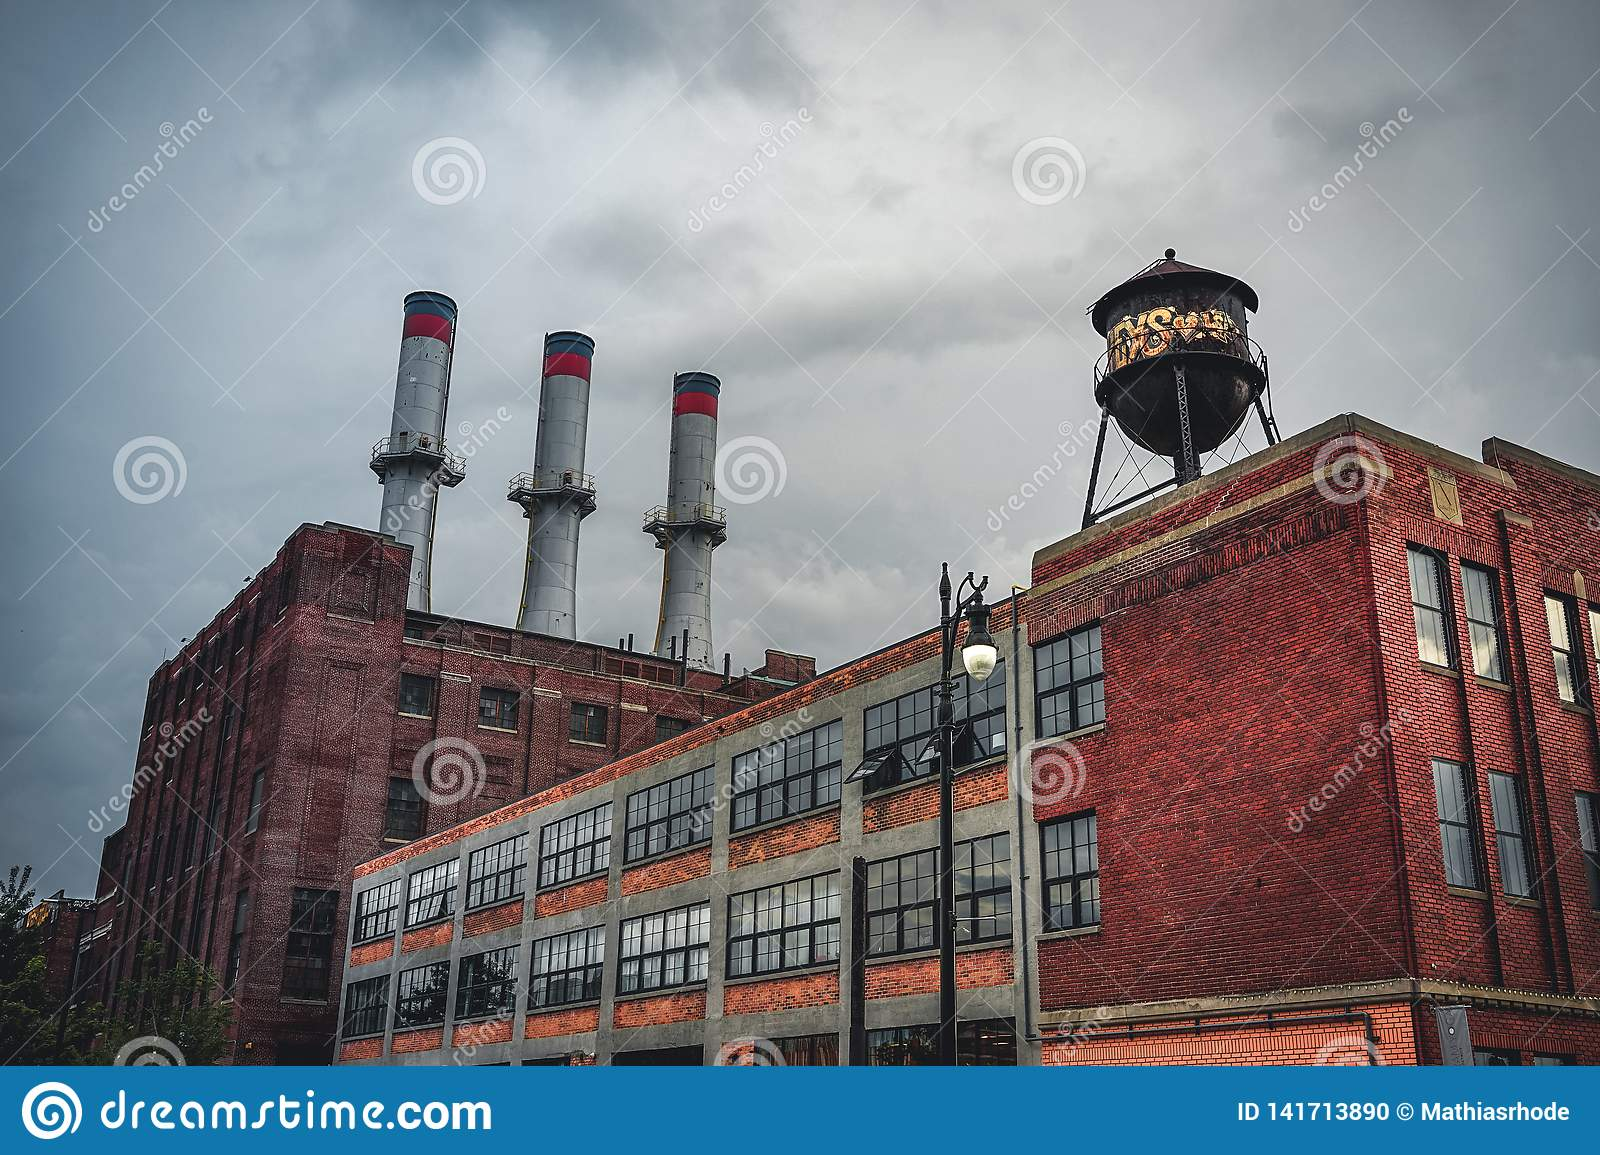 Detroit, Michigan, May 18, 2018: View towards typical Detroit Automotive Factory with water tower and Chimney.